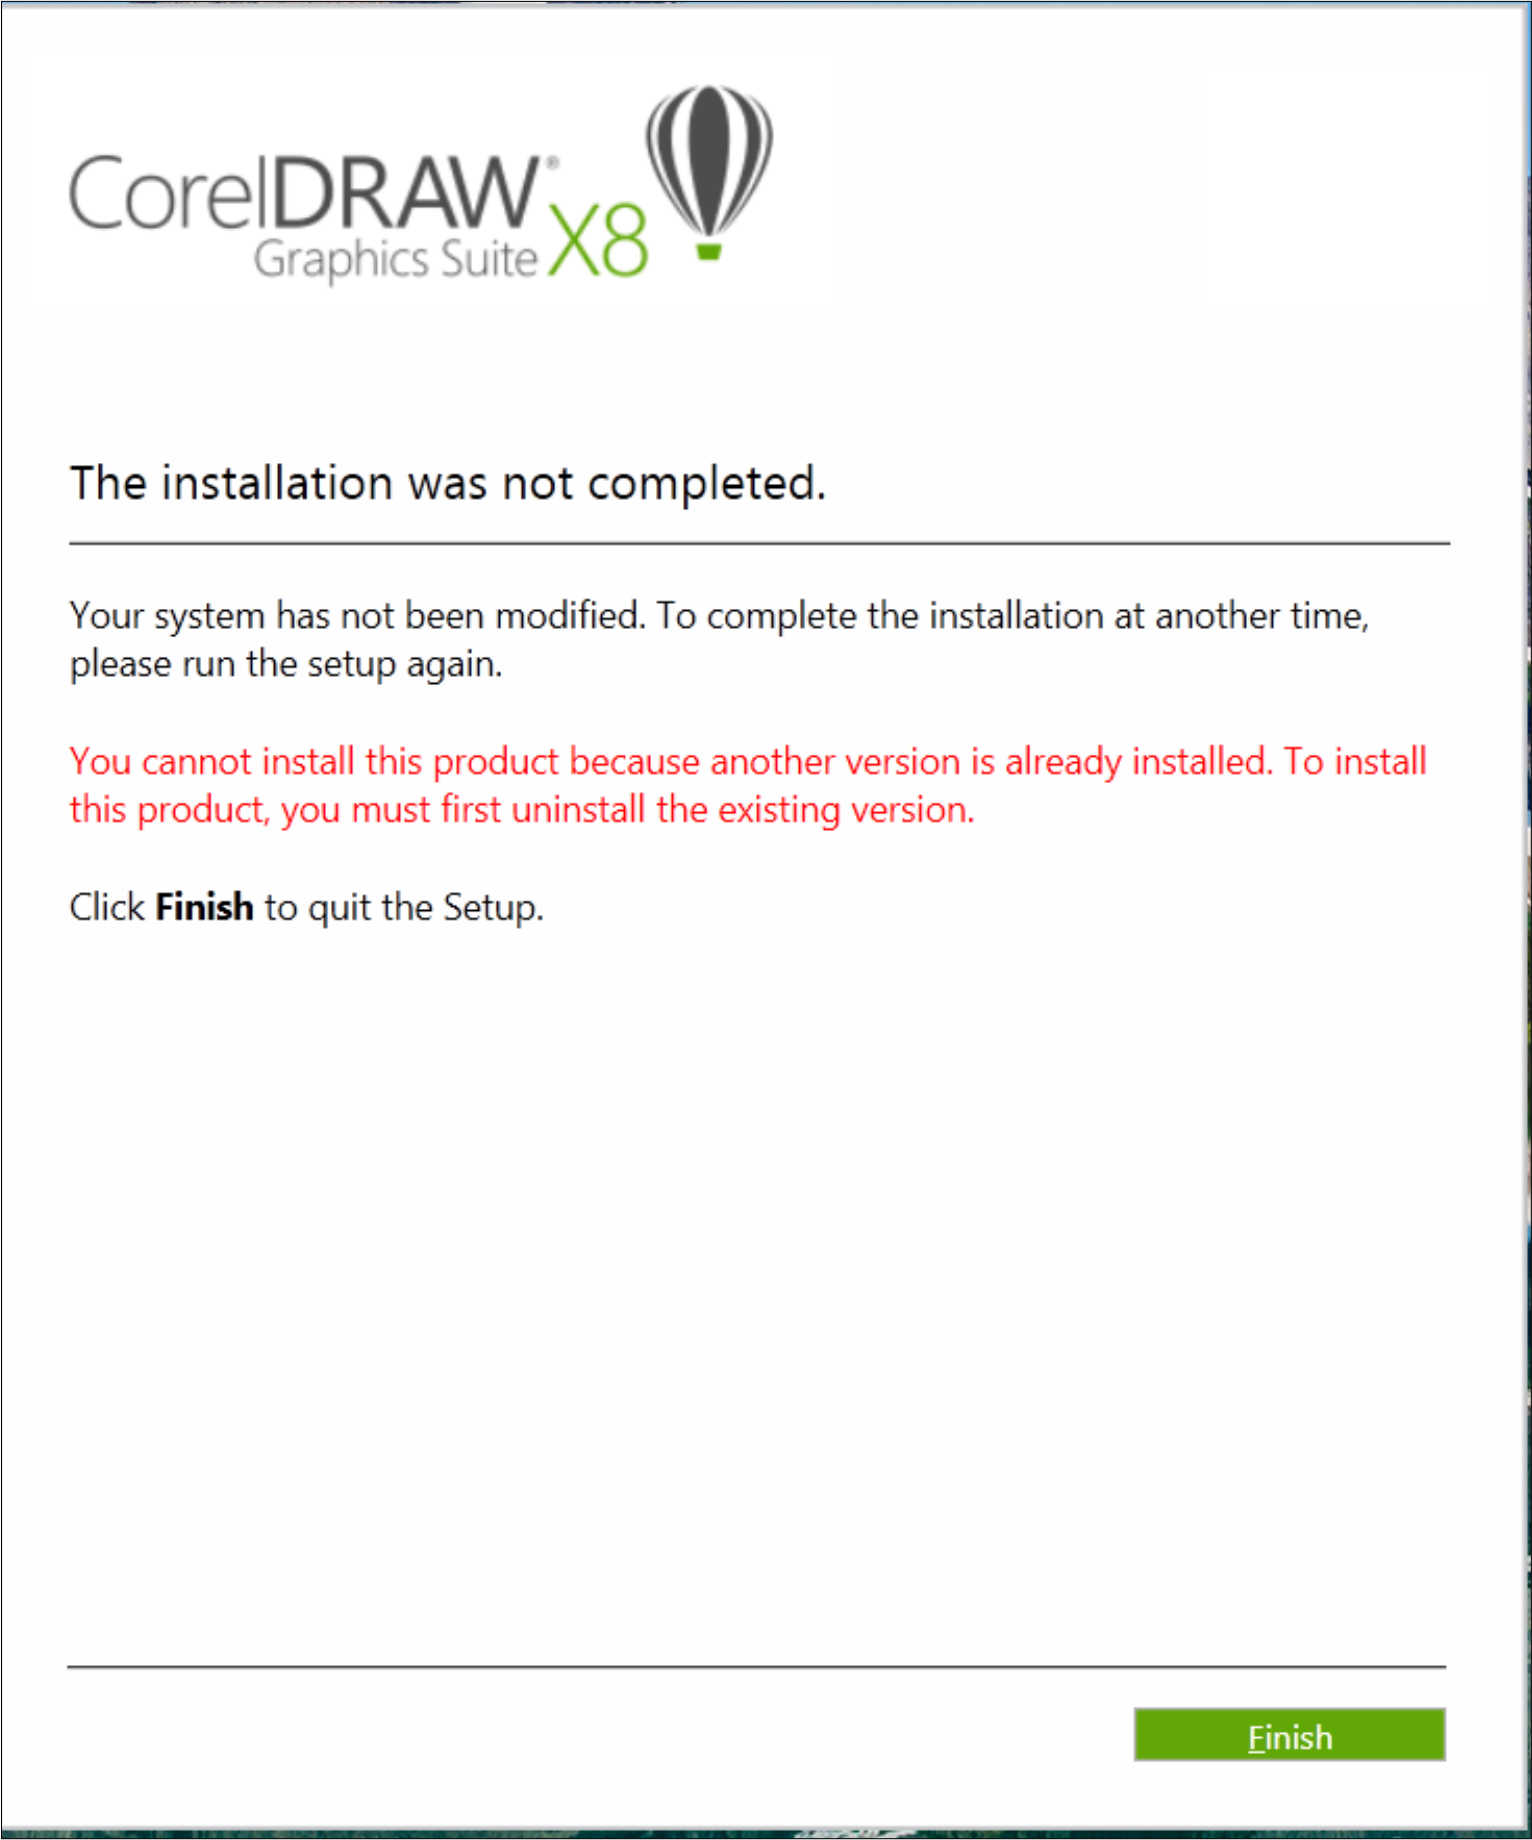 Corel draw version compatible with windows 10 - Okay After Reinstalling Windows 7 Pro And Visual Studio Suite And A Slew Of Other Junk I Got This Message